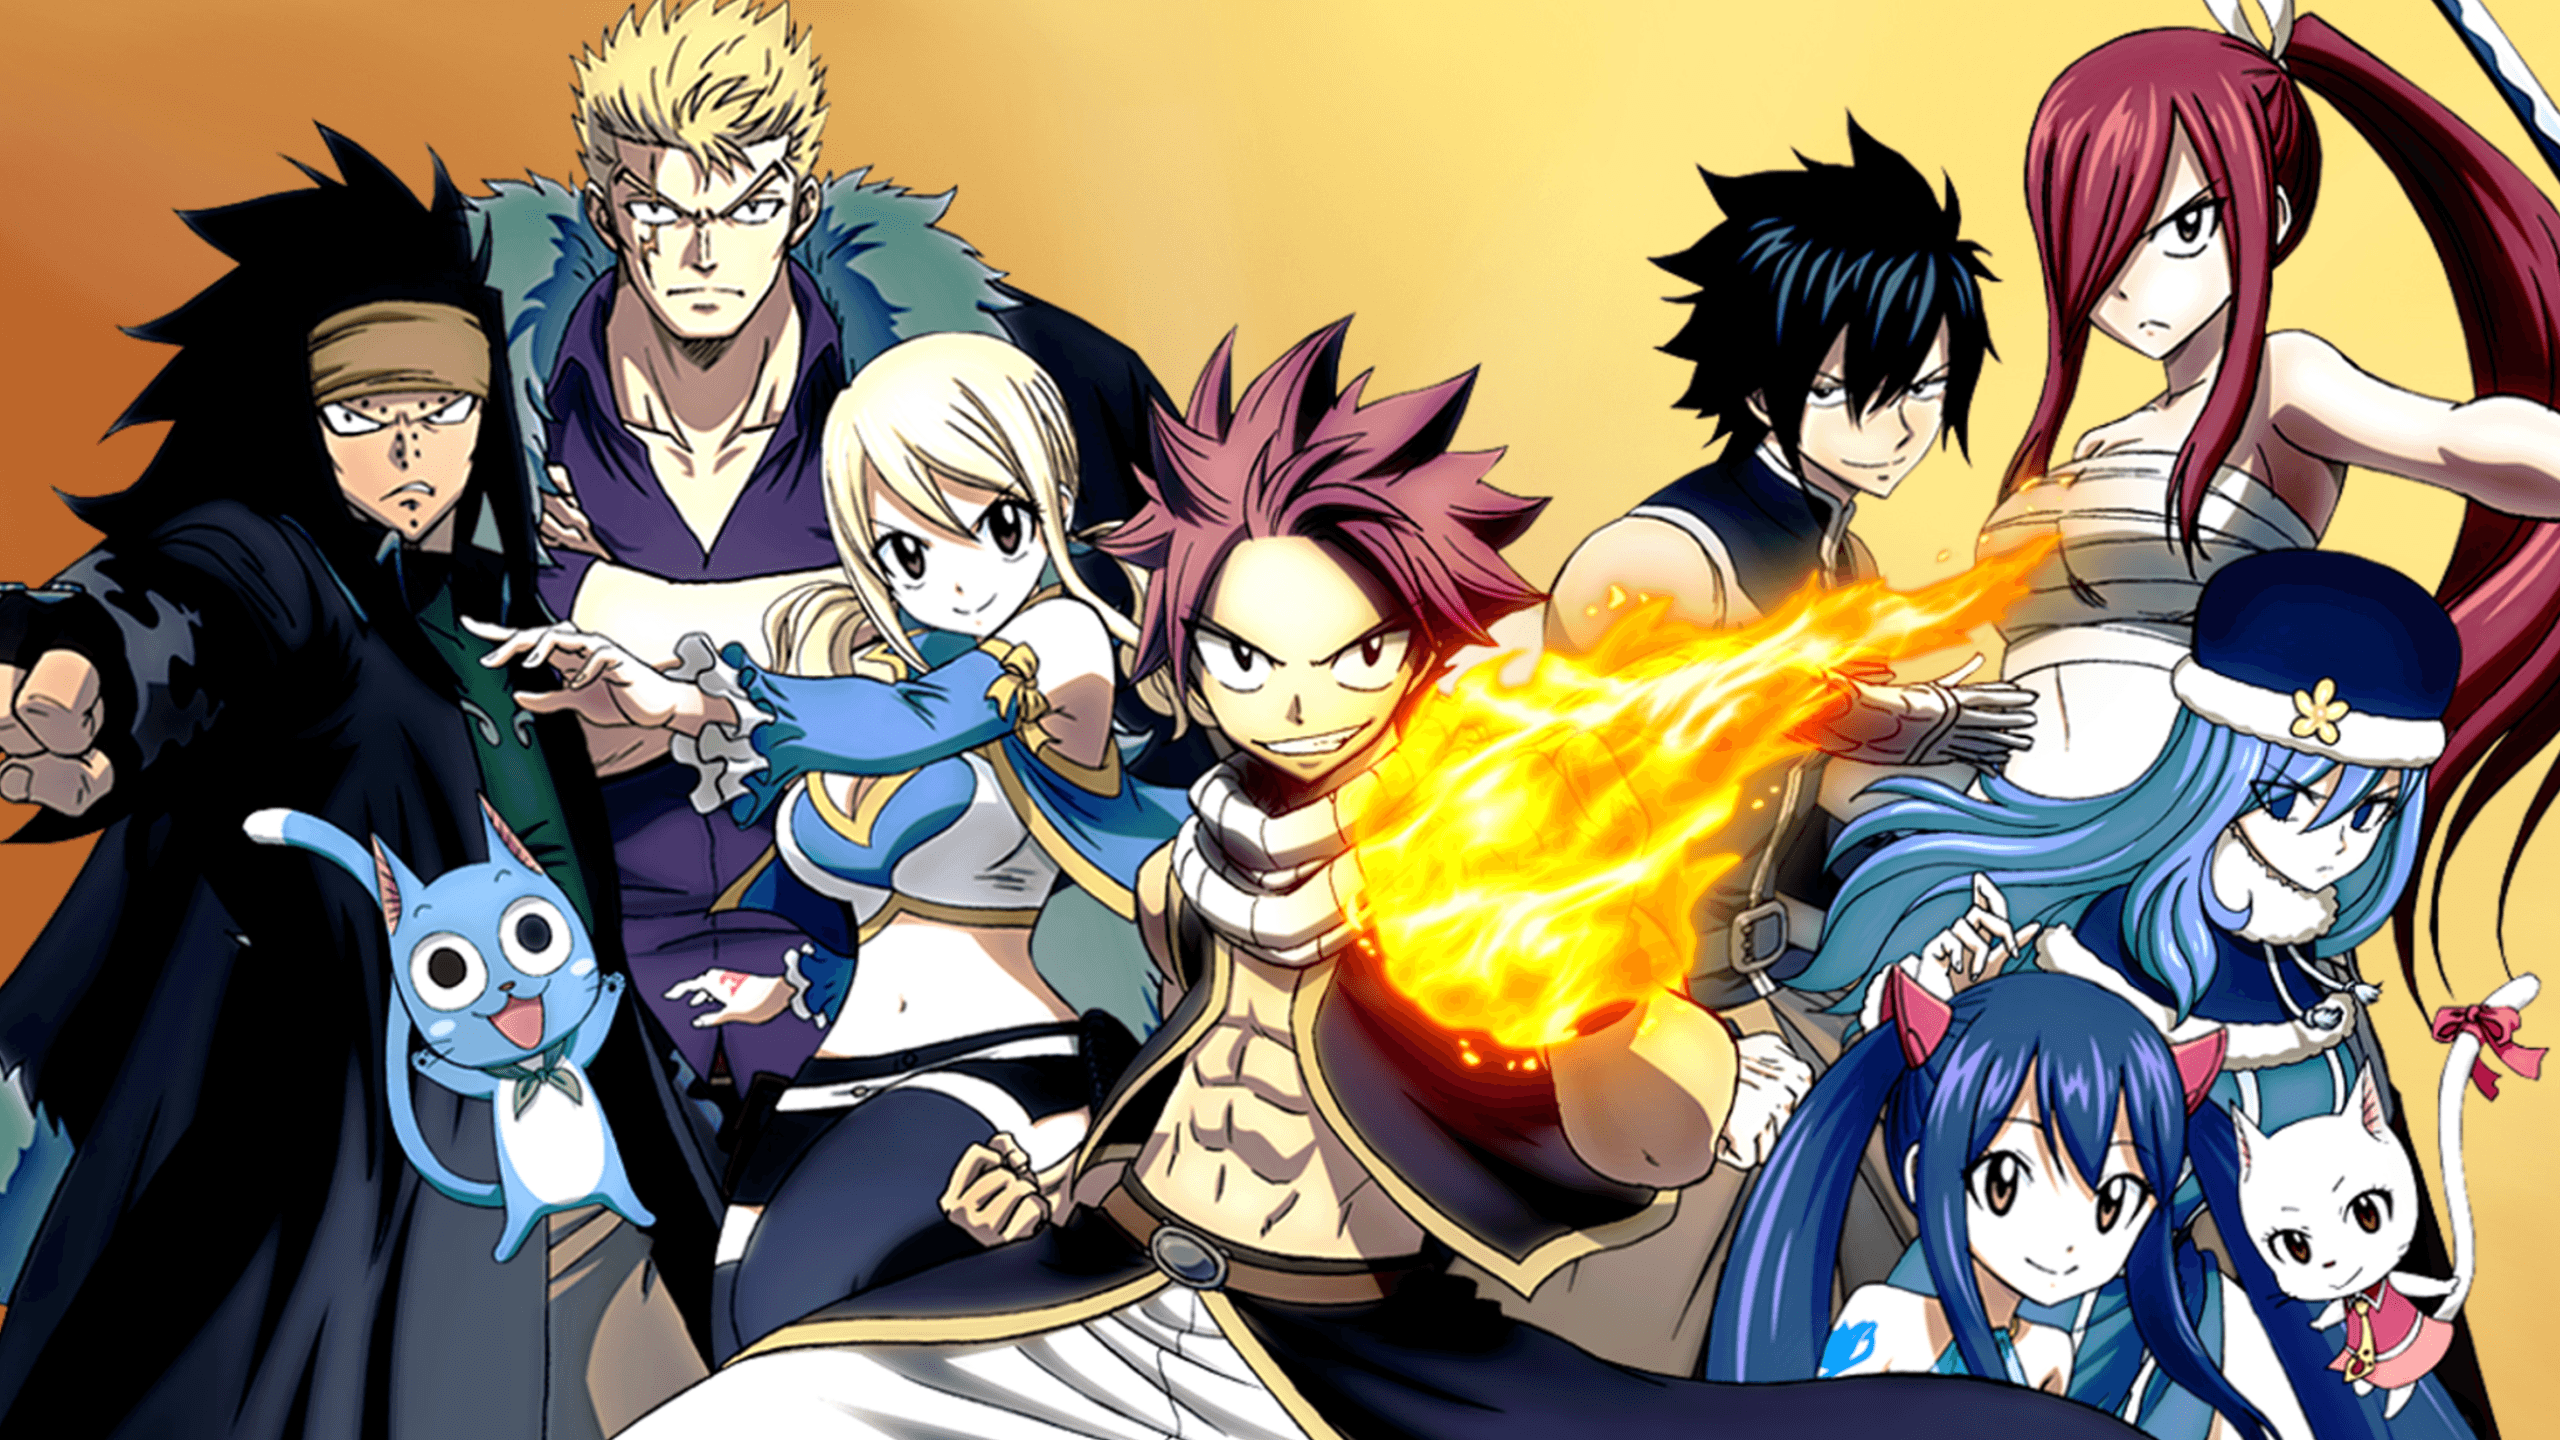 Fairy Tail Wallpapers Top Free Fairy Tail Backgrounds Wallpaperaccess